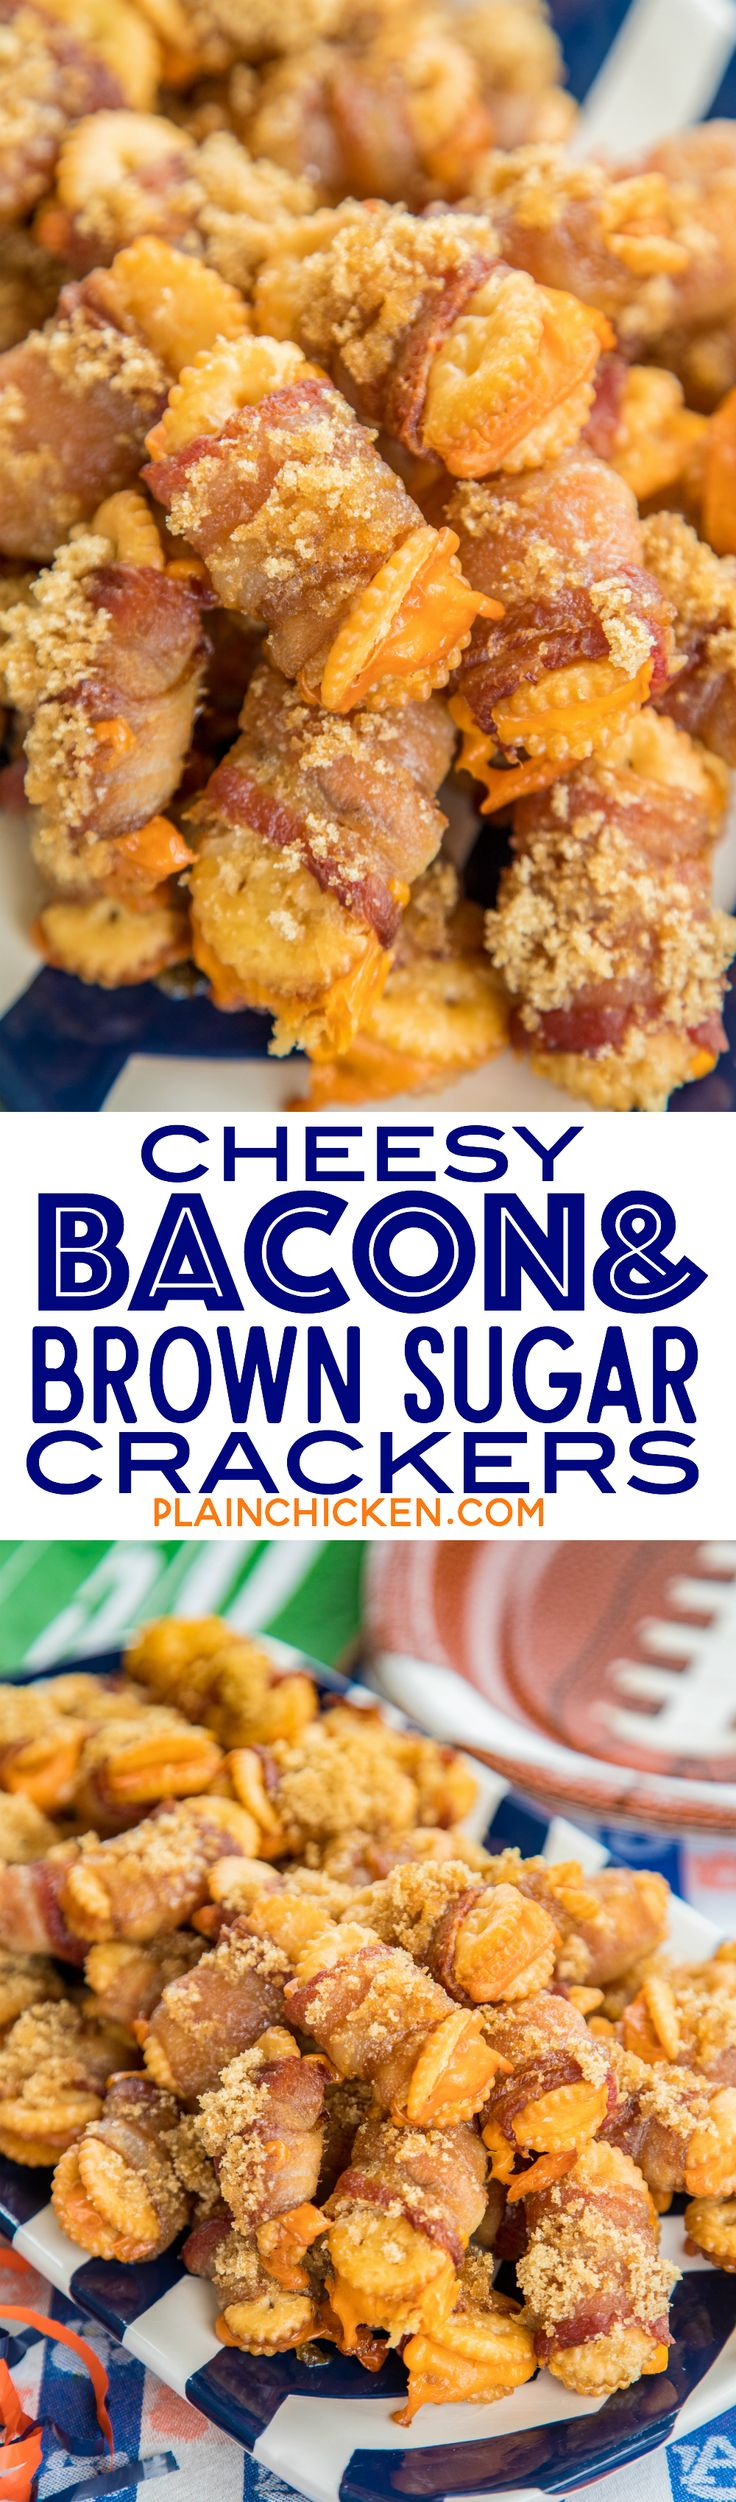 Cheesy Bacon and Brown Sugar Crackers - so good! You can't eat just one!!! Townhouse crackers stuffed with cheddar cheese, wrapped in bacon and topped with brown sugar. These are always a hit at parties!!! Sweet and Savory in every bite! #bacon #appetizers #tailgating